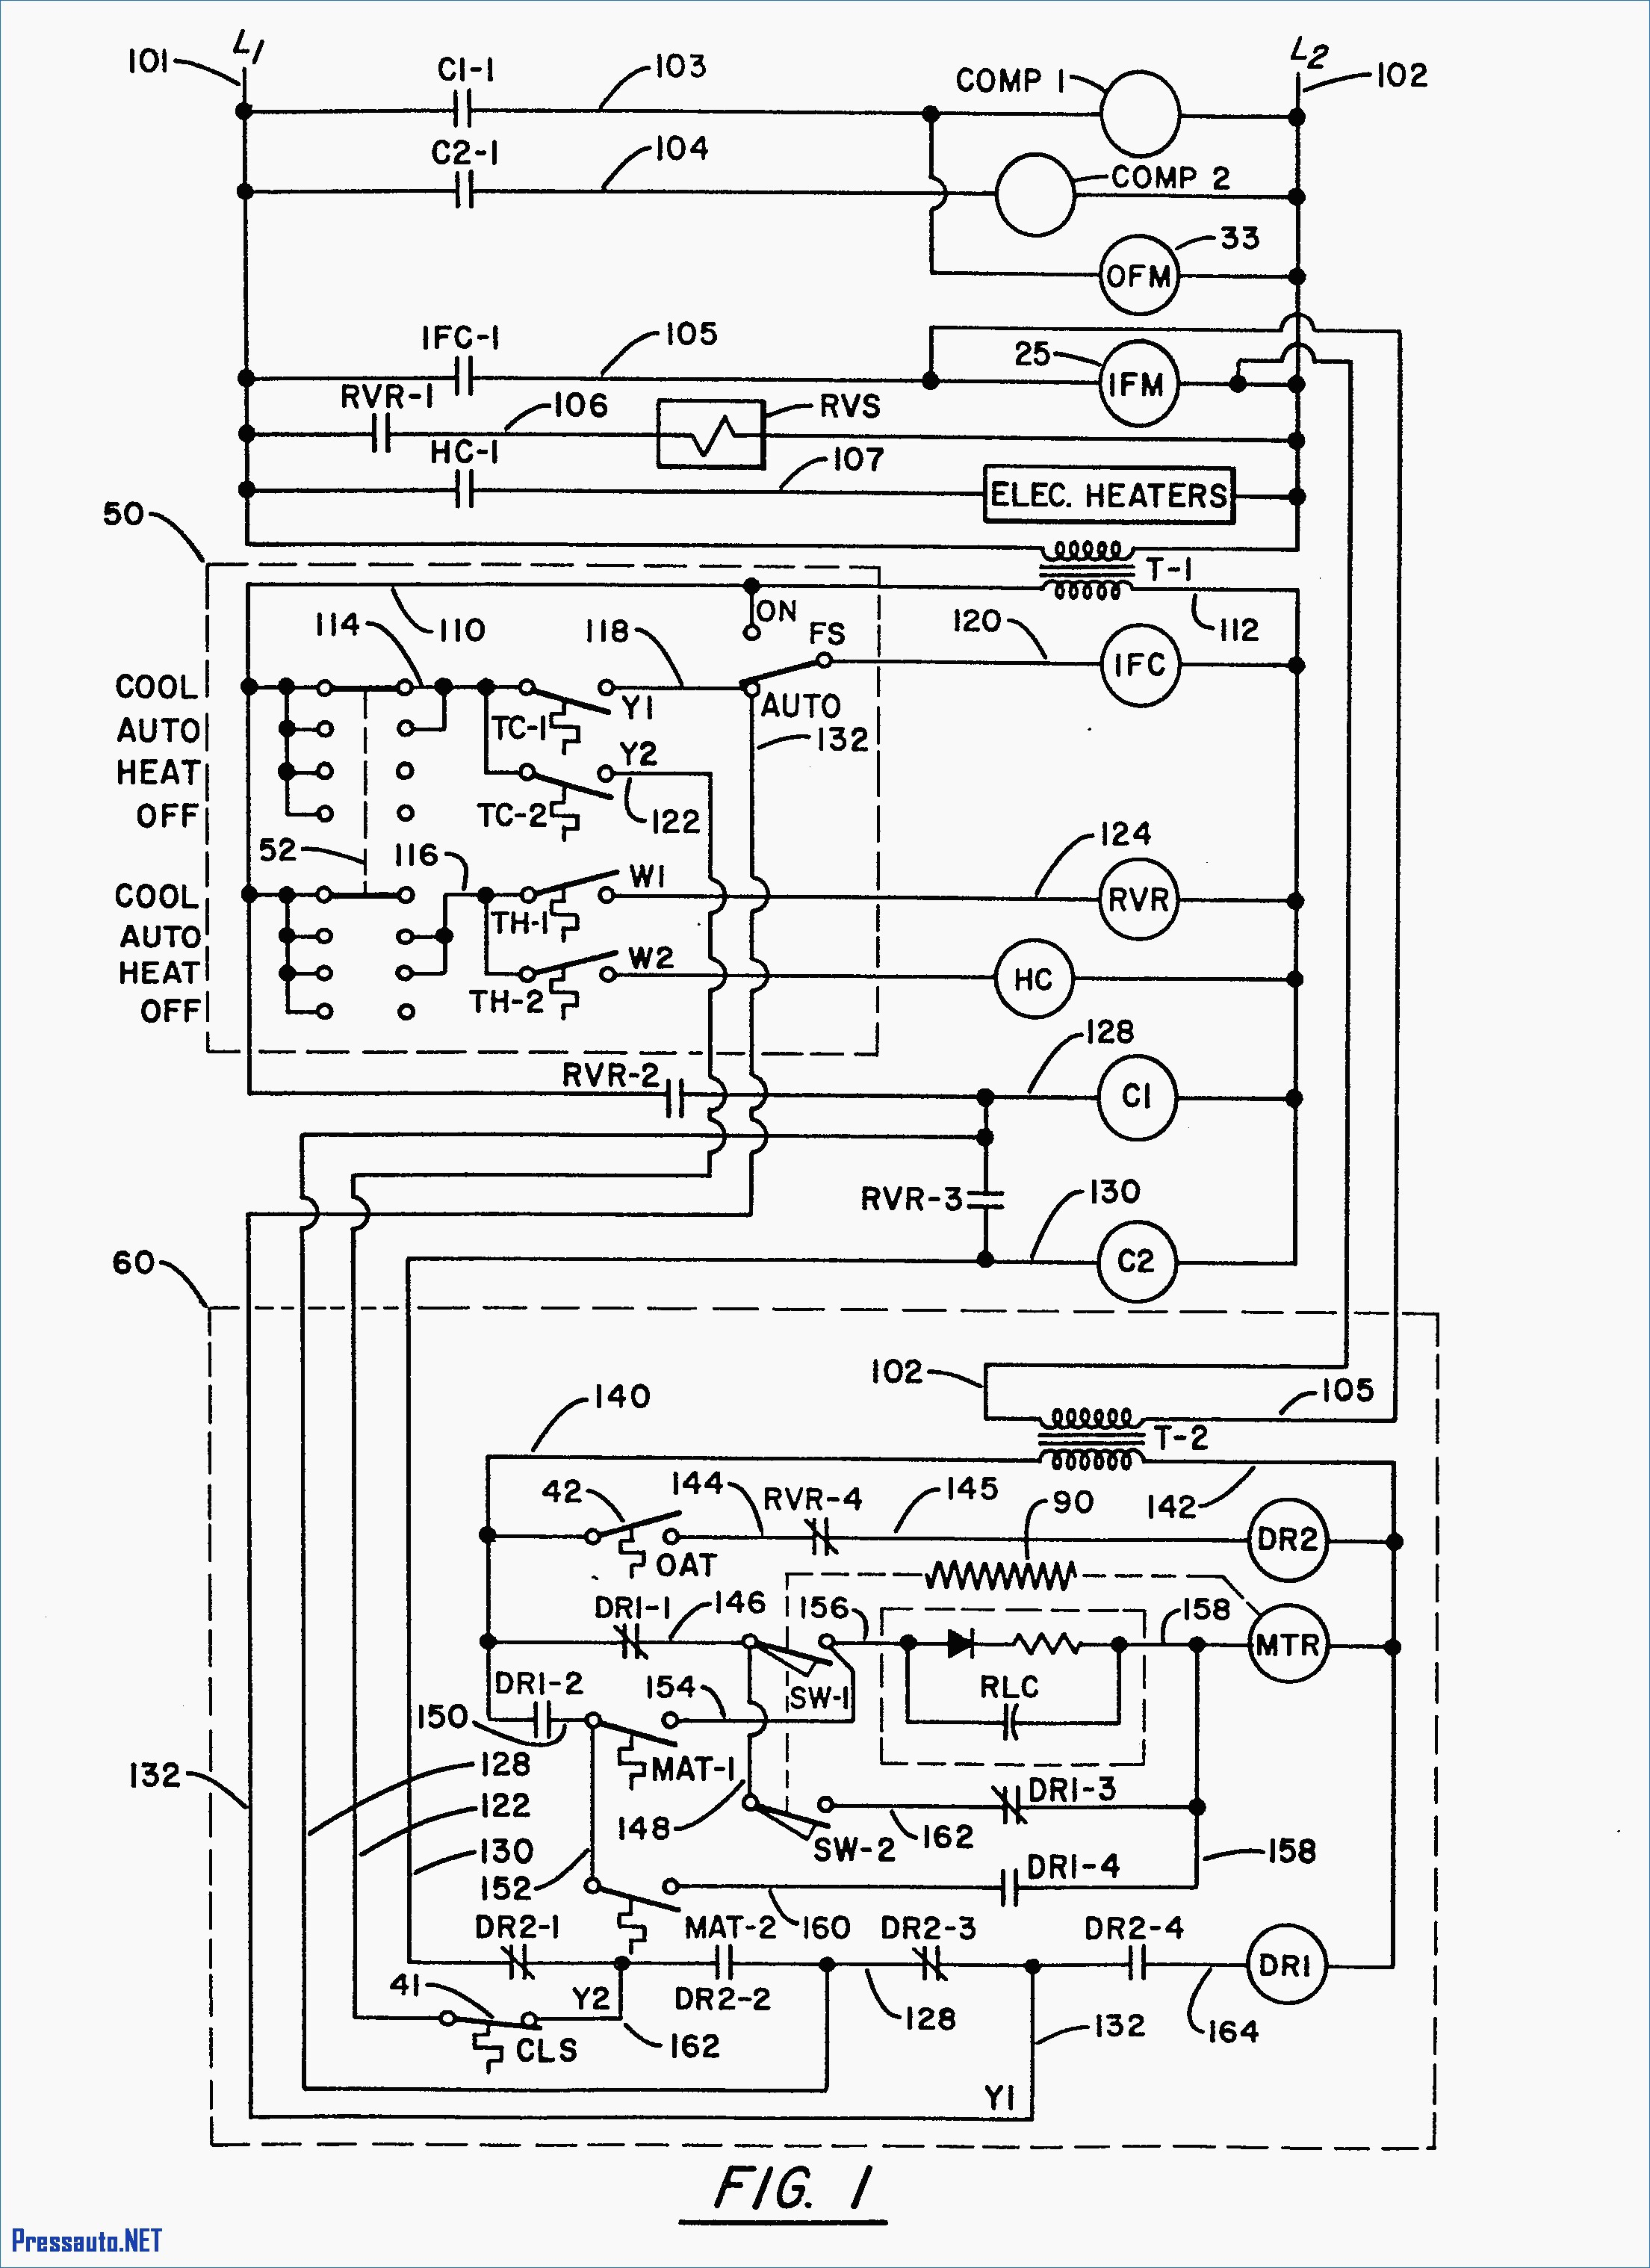 Trane Rooftop Unit Wiring Diagram. Trane Xl 1200 Wiring Diagram New Condenser Diagrams. Wiring. Trane Condenser Unit Wiring Diagram At Scoala.co